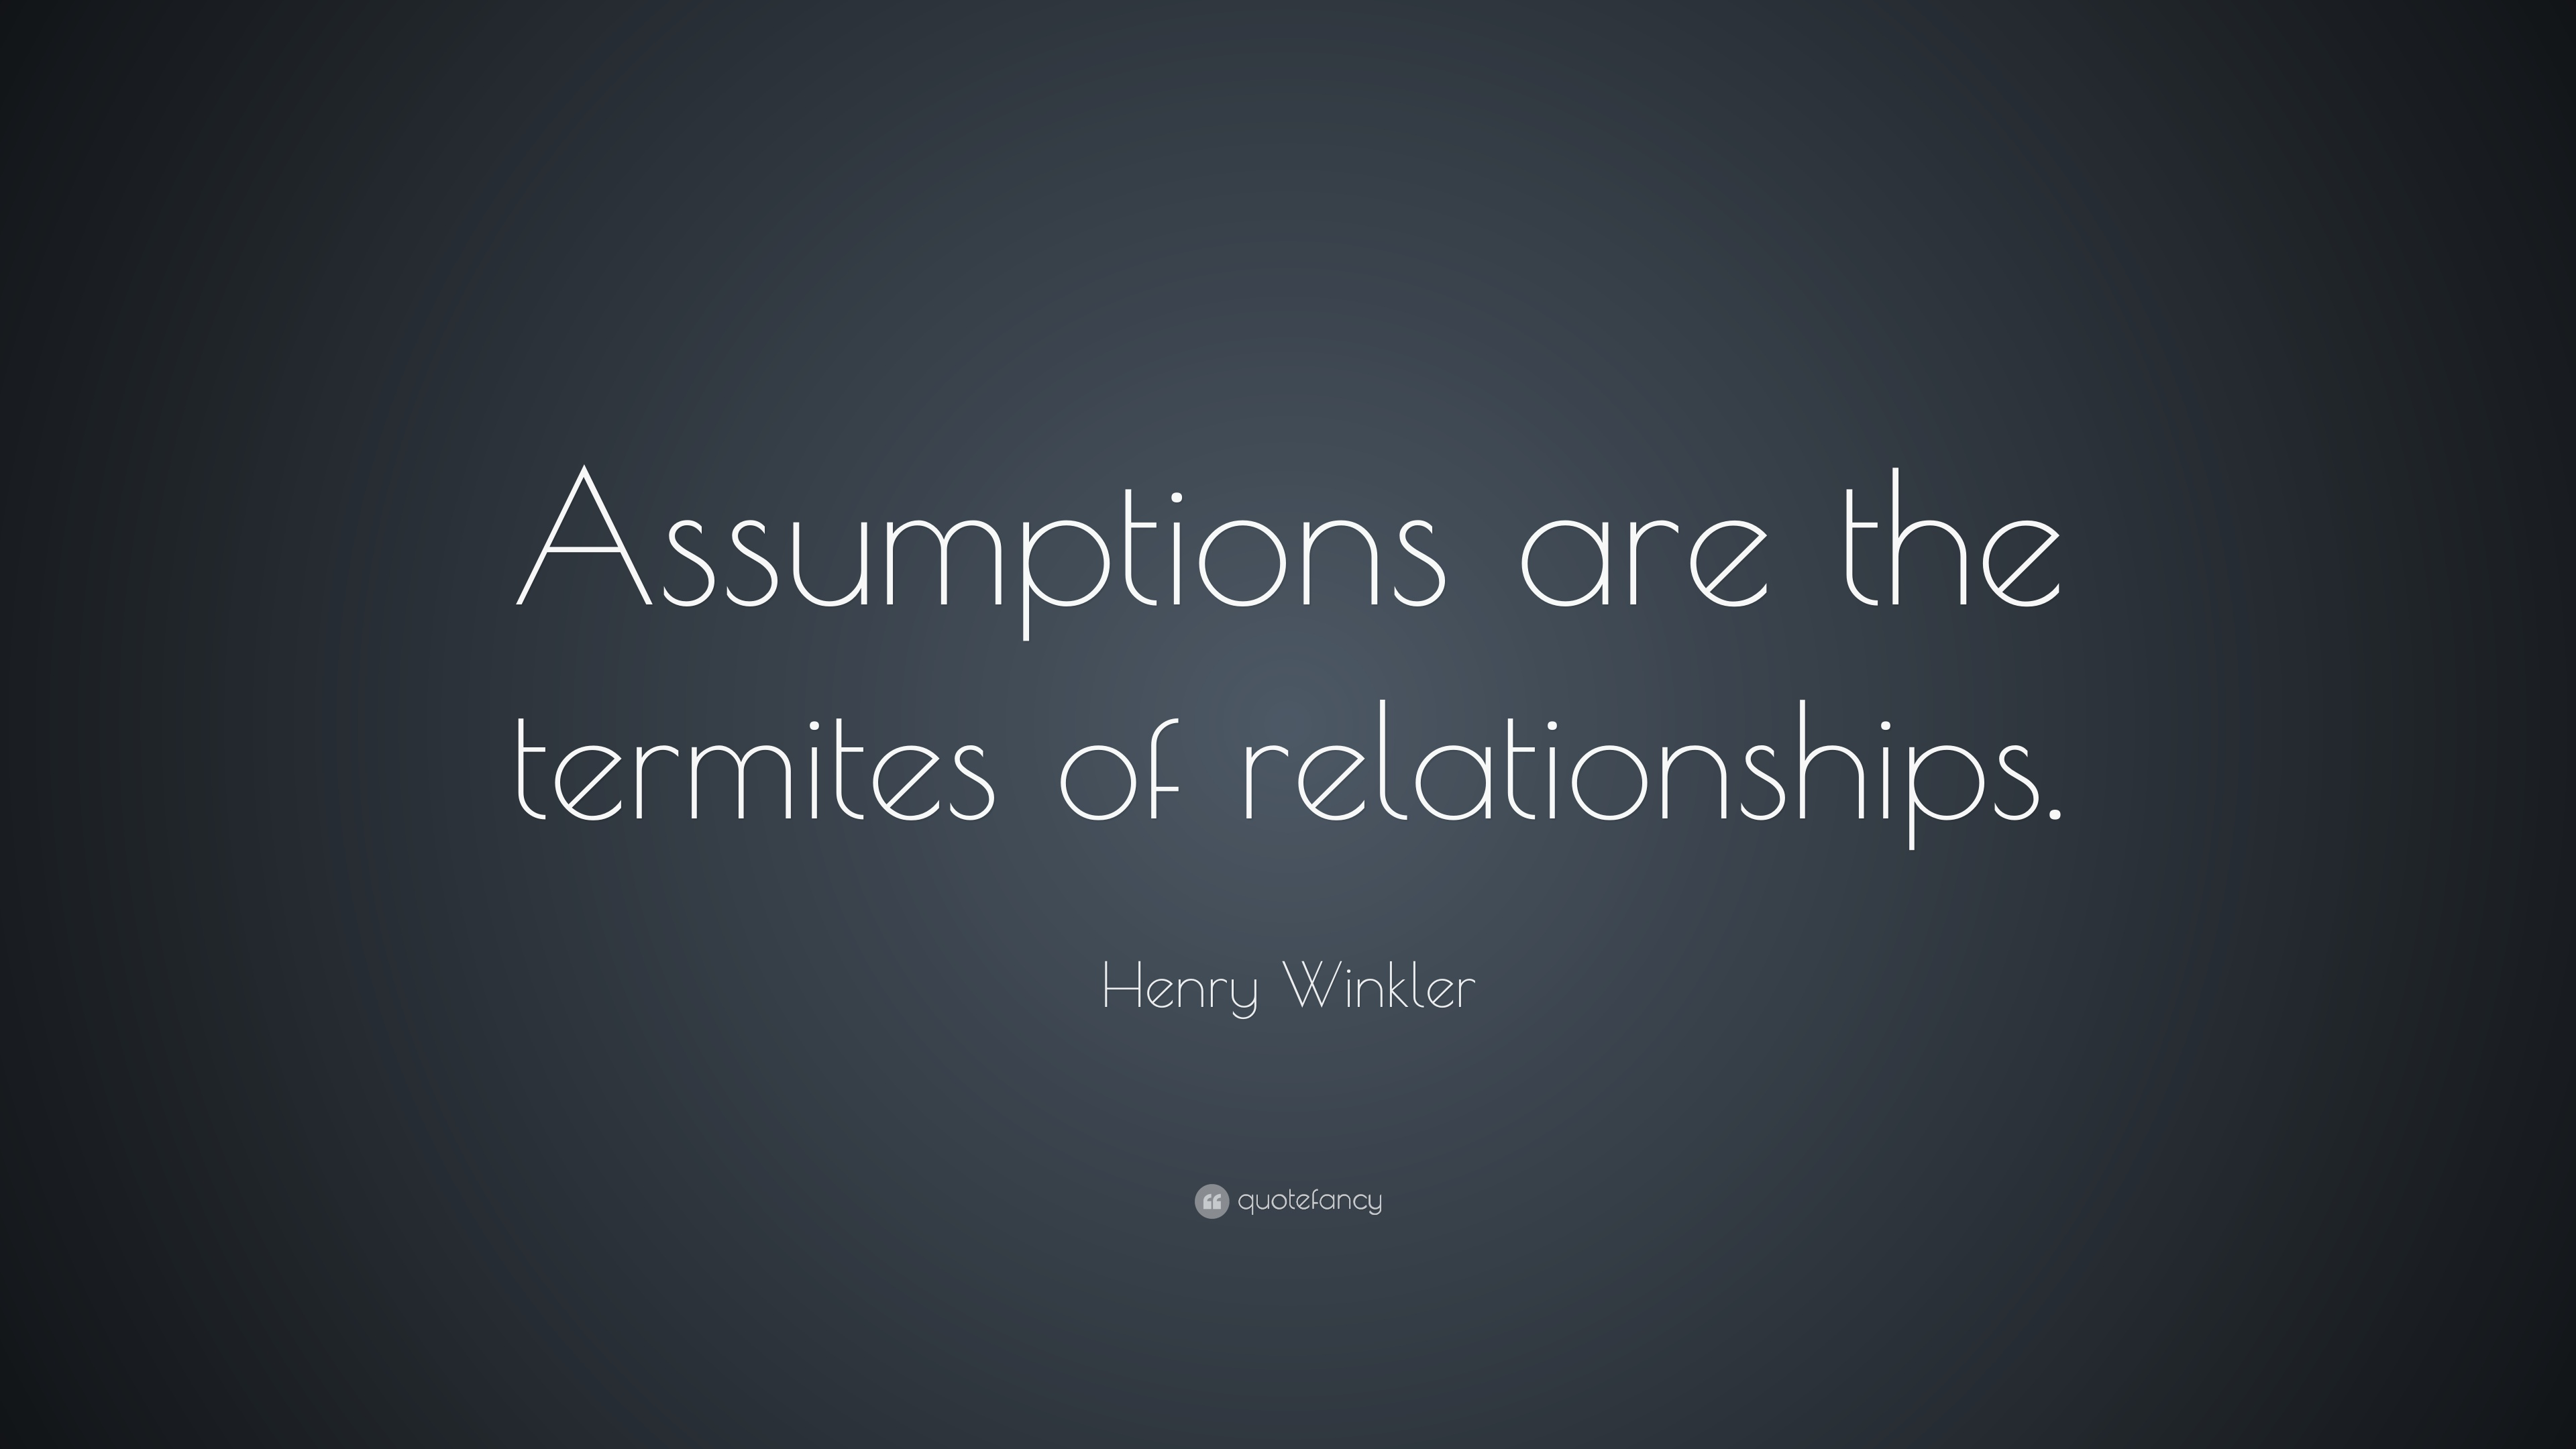 Relationship Quotes  57 wallpapers    Quotefancy Relationship Quotes     Assumptions are the termites of relationships          Henry Winkler